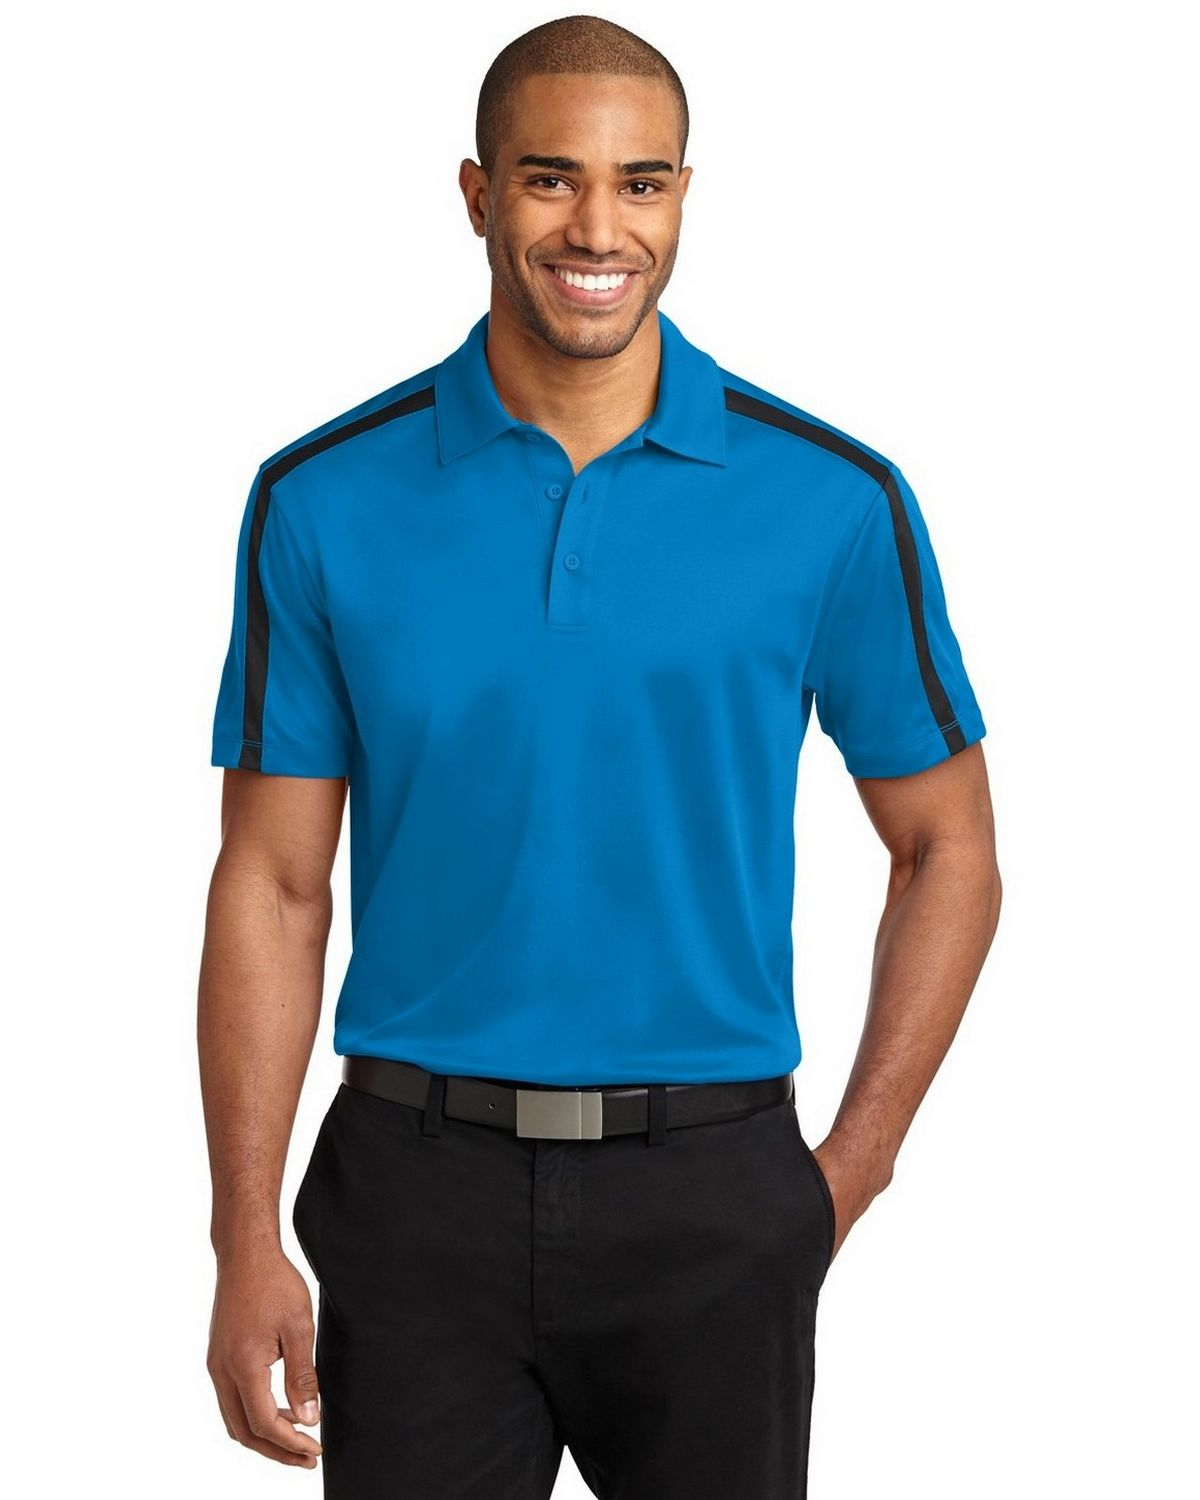 Port Authority K547 Men's Silk Touch Performance Colorblock Stripe Polo - Brilliant Blue/Black - XS #silk